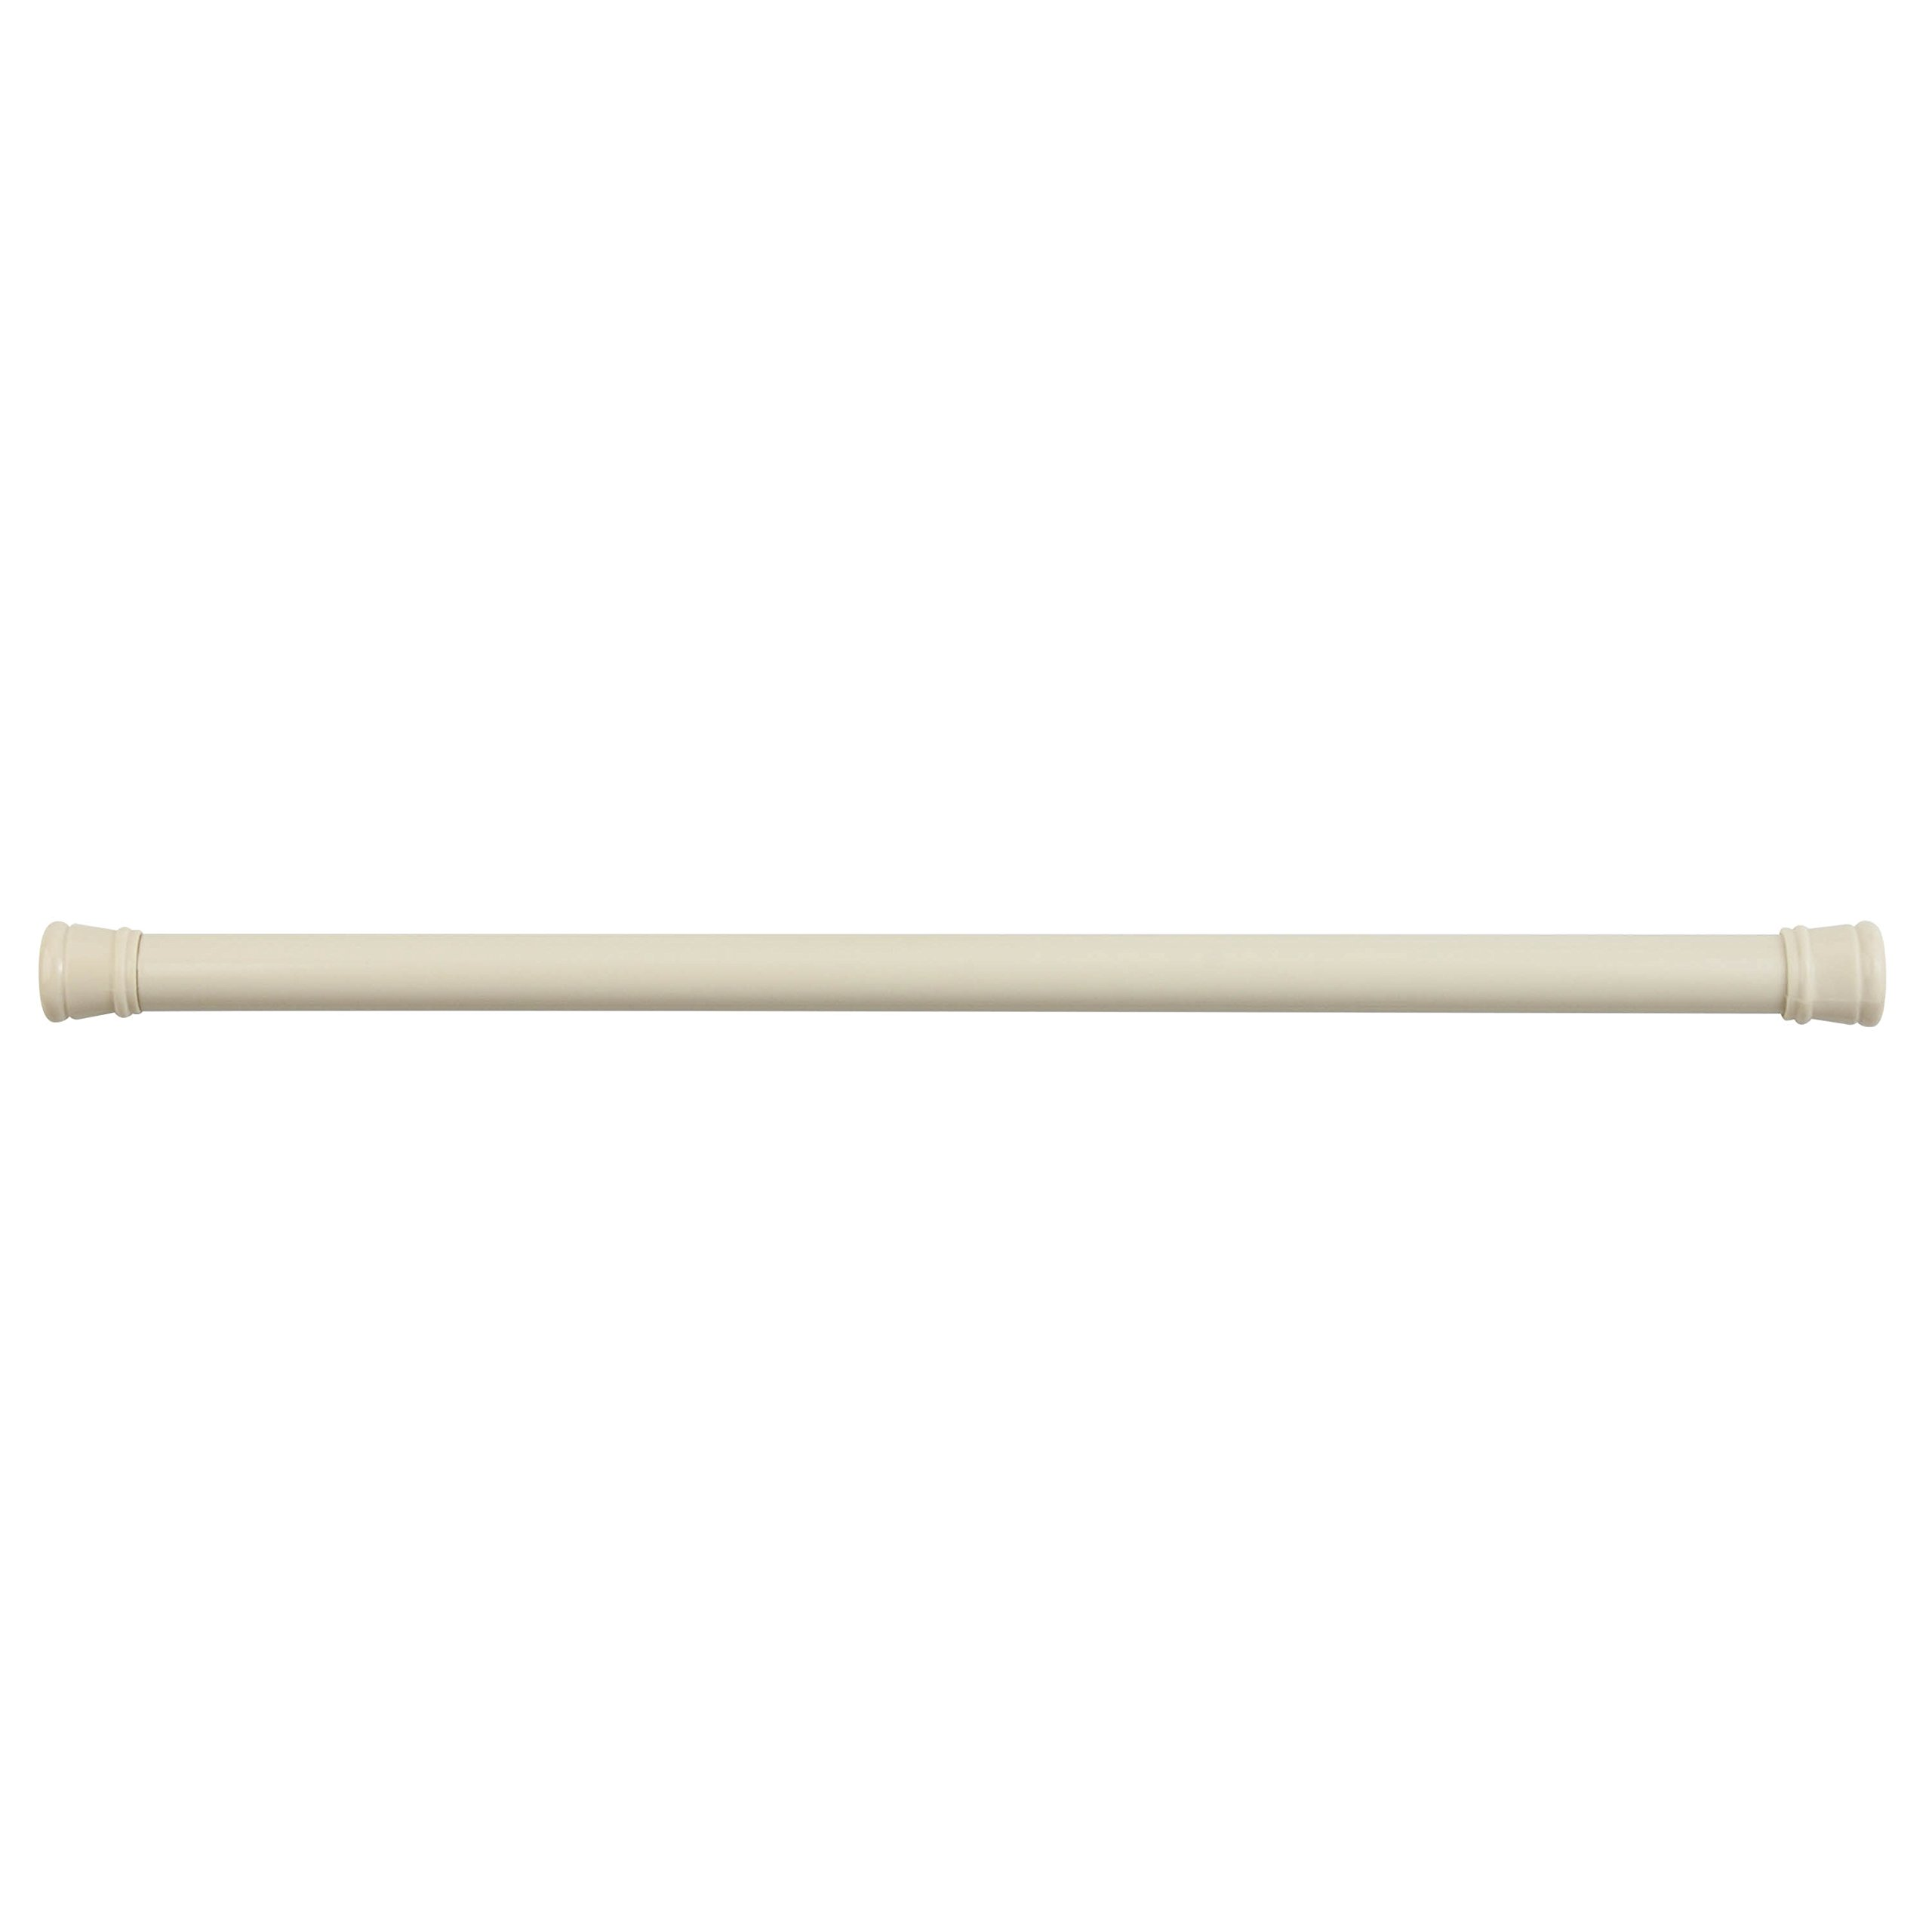 Honey-Can-Do 40'' Bathroom Tension Rod Extends from 23'' to 40'', 23'' Length x 1'' Width x 1'' Height, Beige